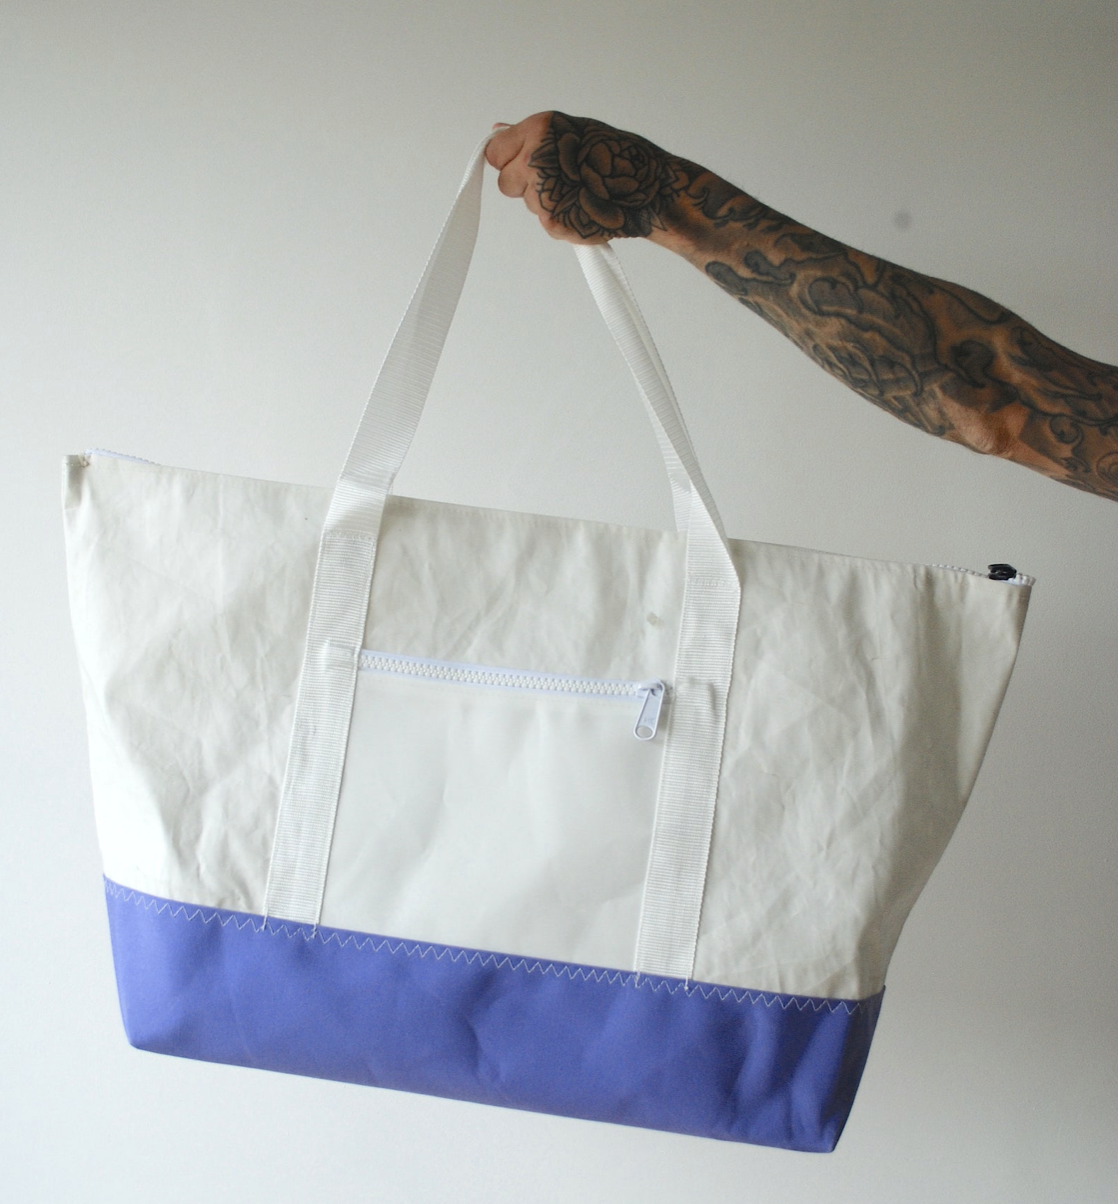 Recycled sail tote bag from Pablo the Sailmaker, on Etsy, £50 https://www.etsy.com/uk/listing/742260